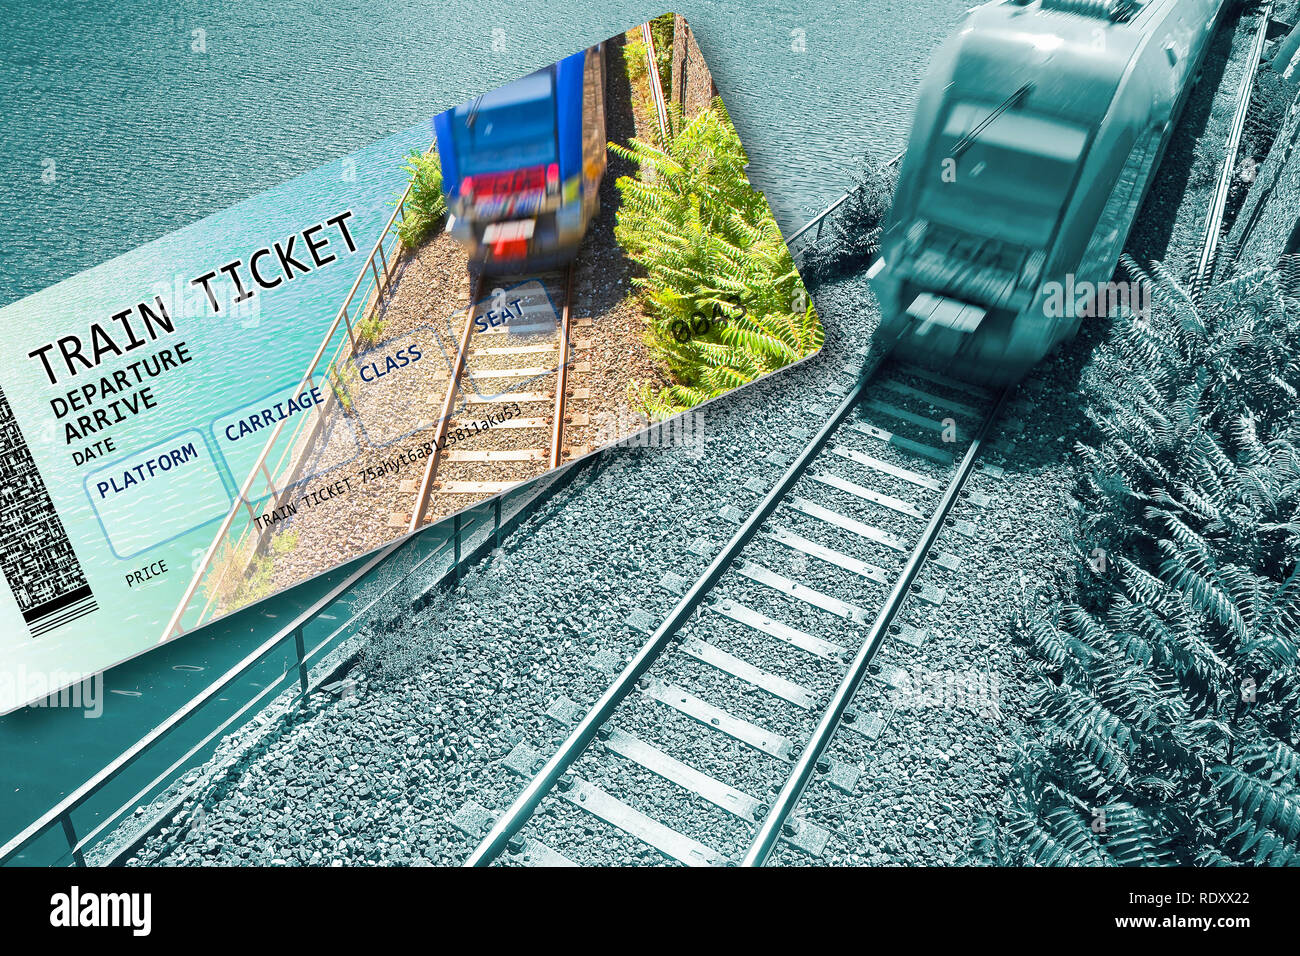 Train ticket - concept image with copy space - The contents of the image are totally invented. The background image, with train, is a picture of my pr - Stock Image